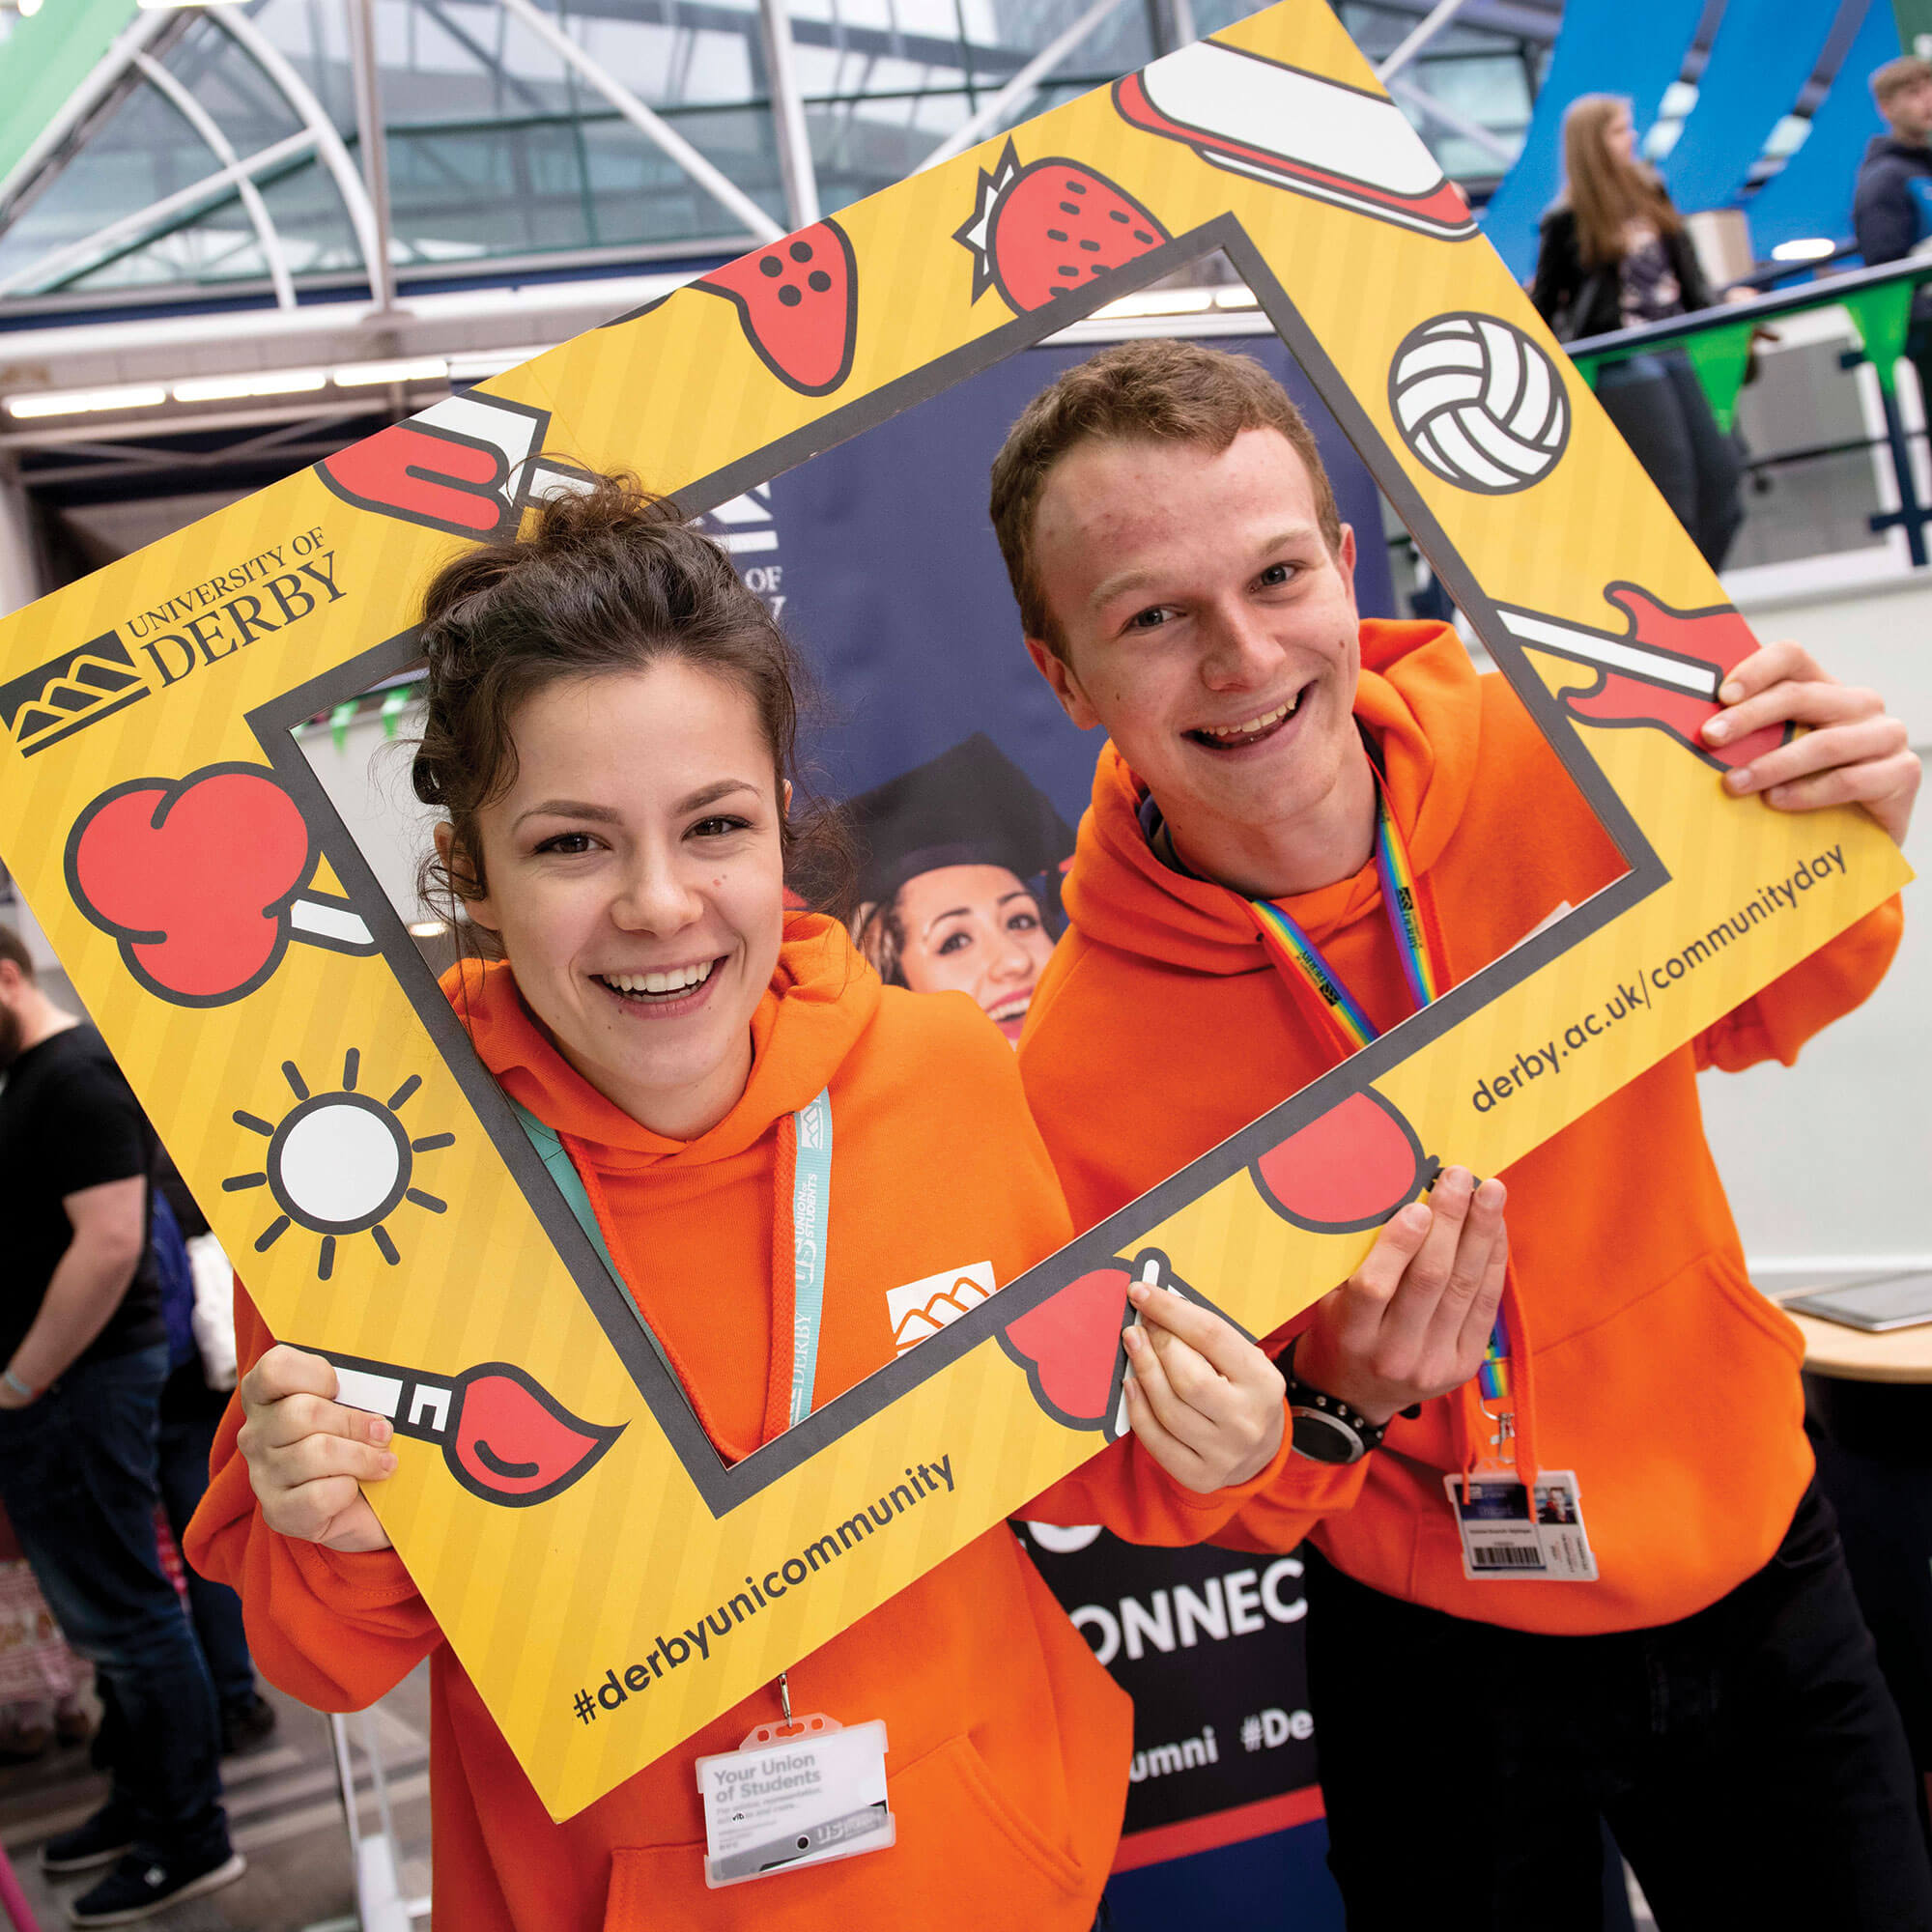 Two student ambassadors in orange hoodies smiling whilst holding polaroid-style frame around faces